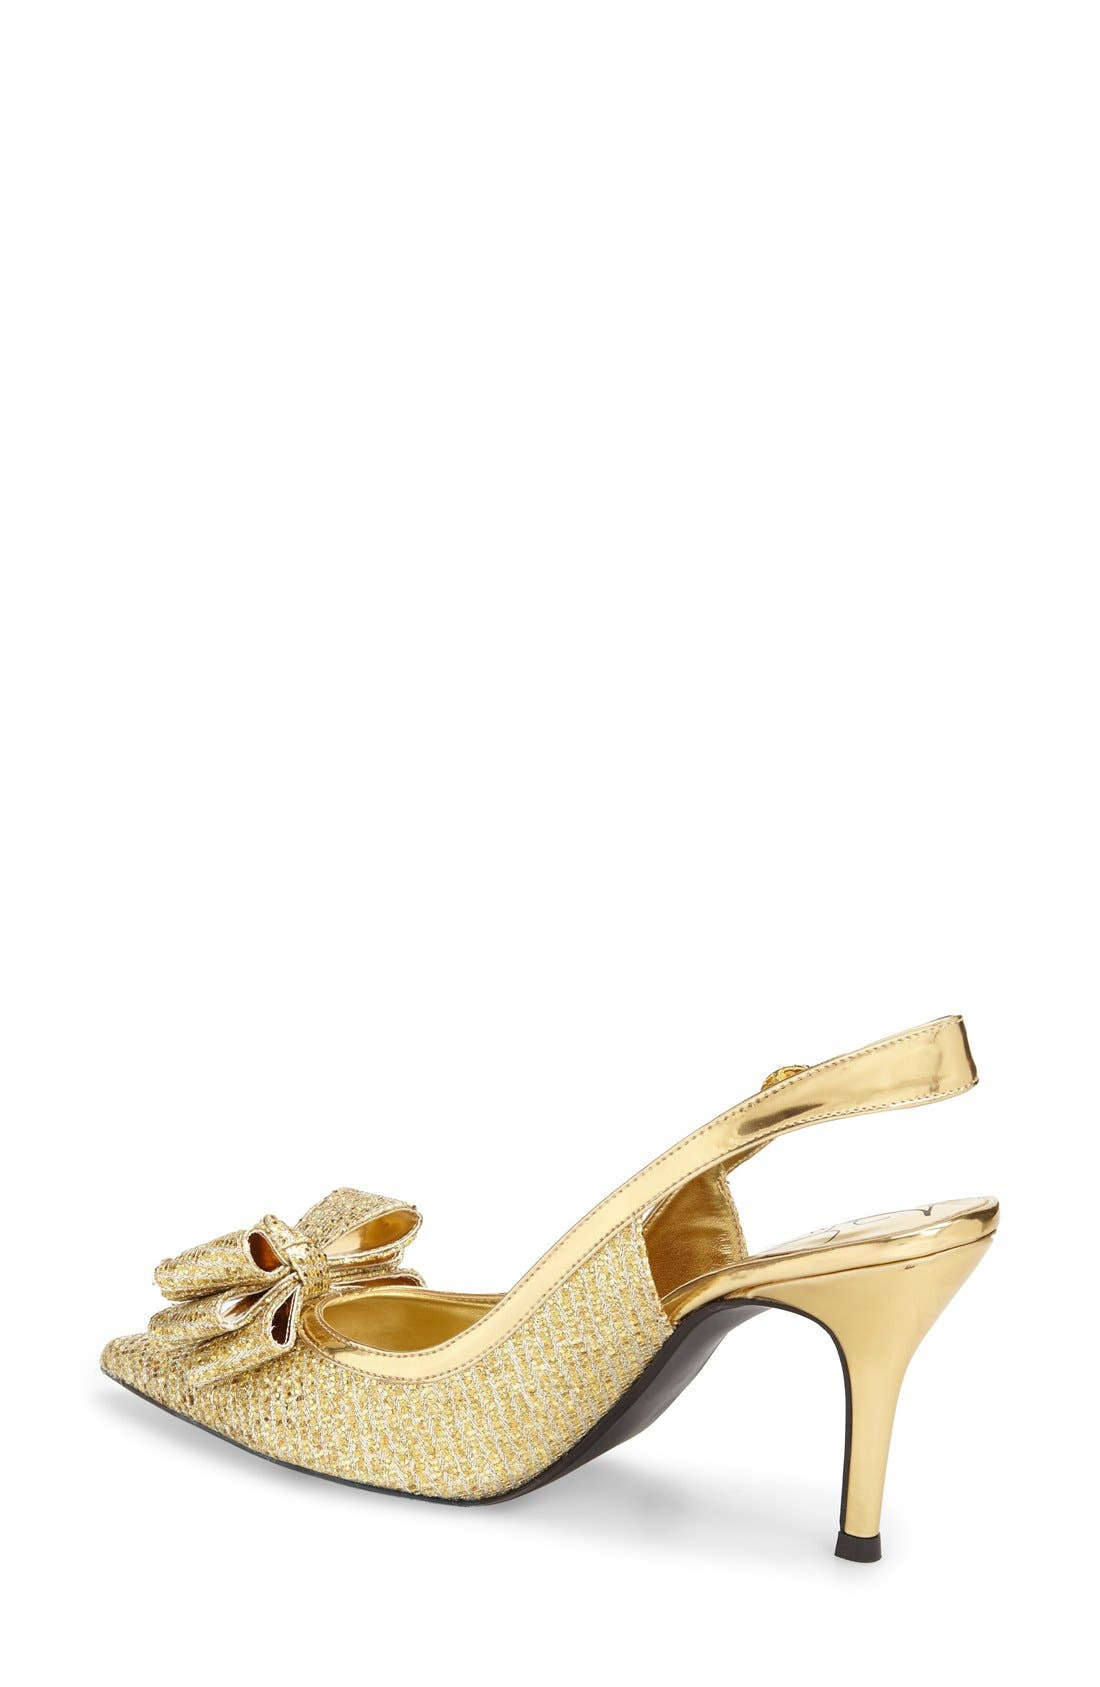 'Charise' Slingback Pump,                             Alternate thumbnail 2, color,                             GOLD